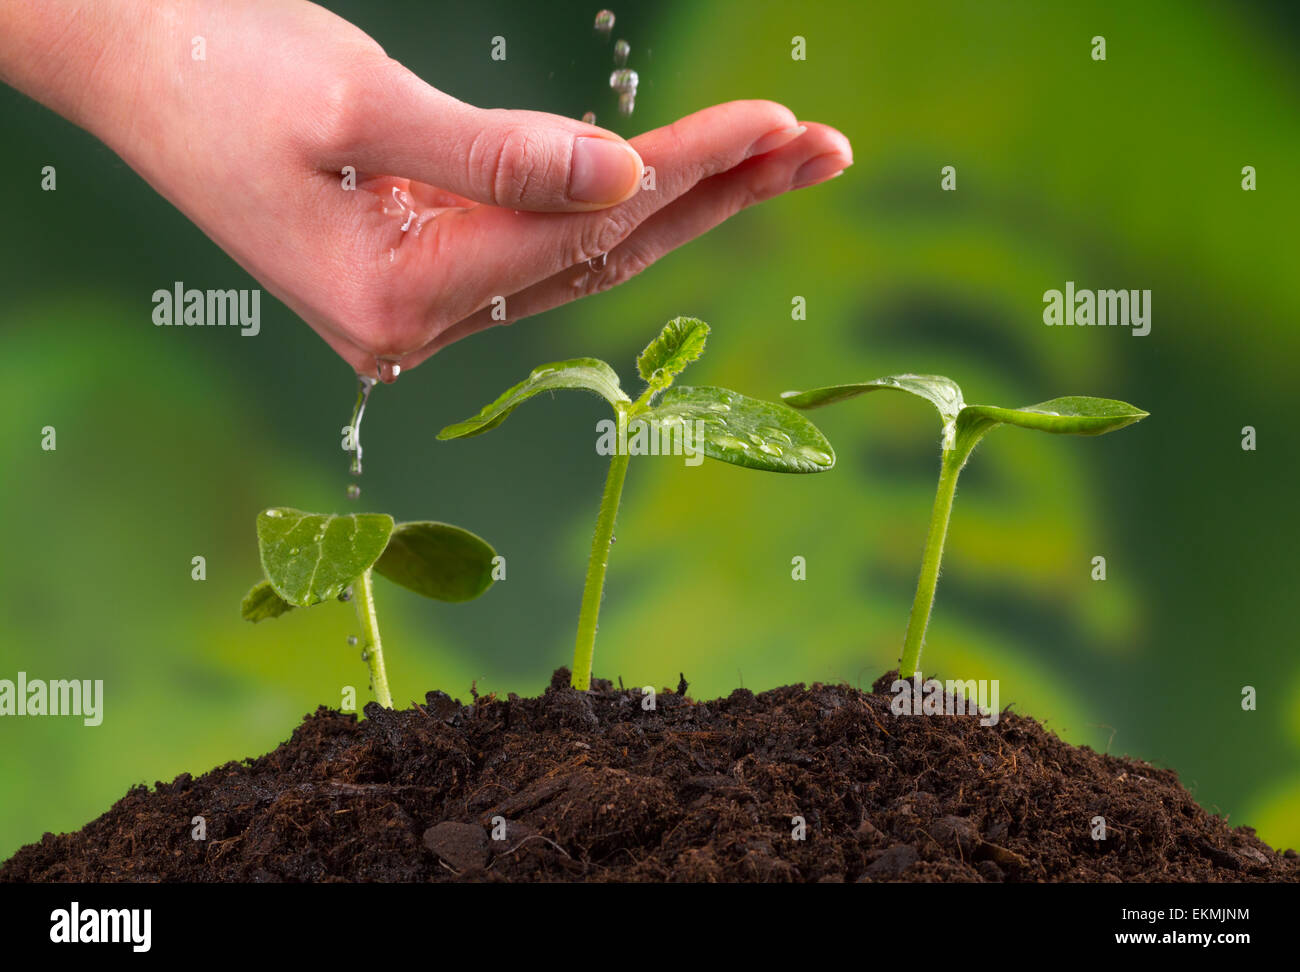 Woman hand watering young plants in pile of soil - Stock Image